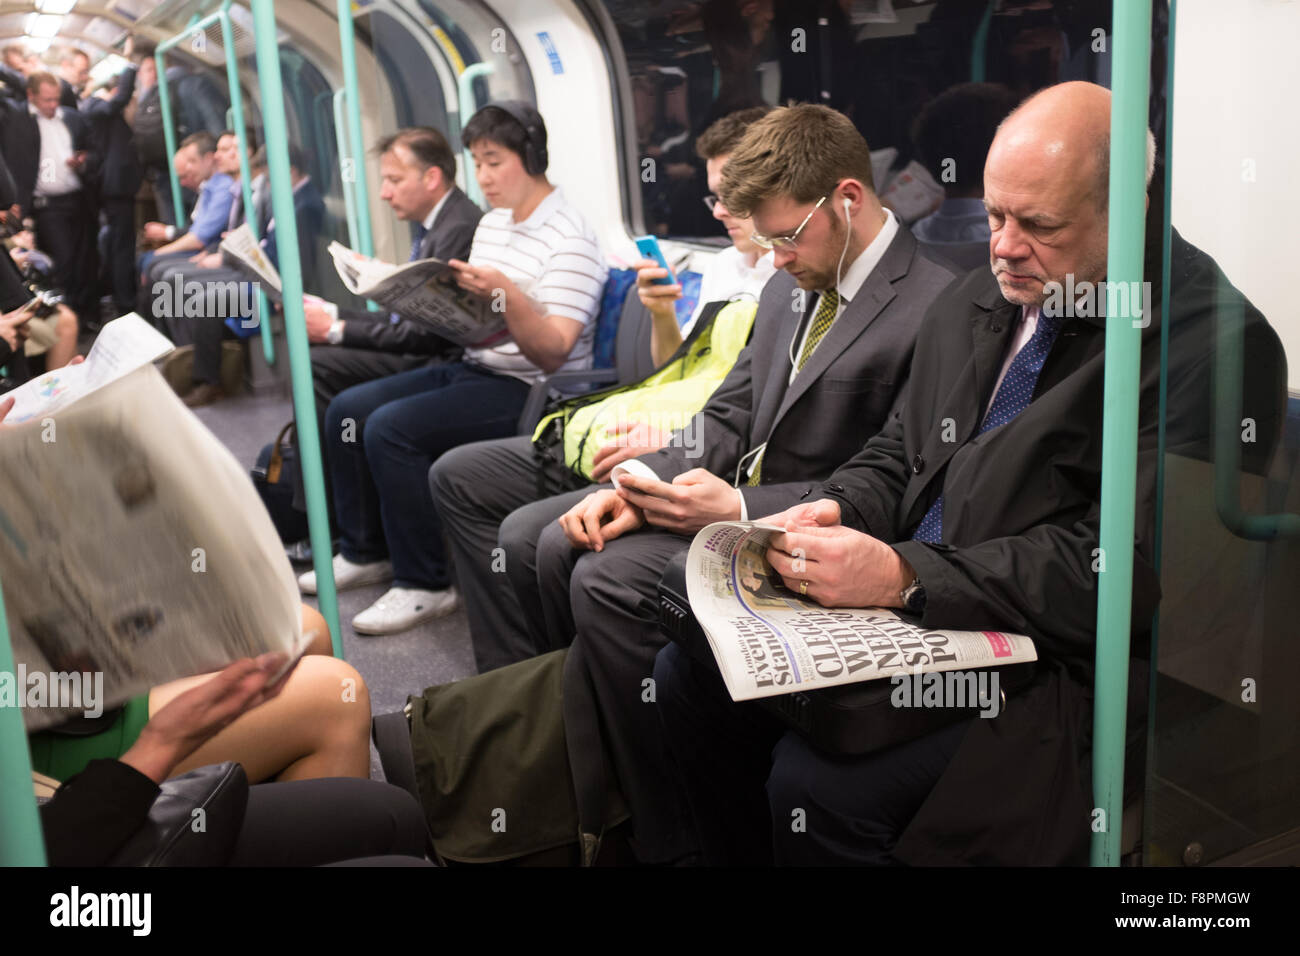 Commuters on London Underground - Stock Image